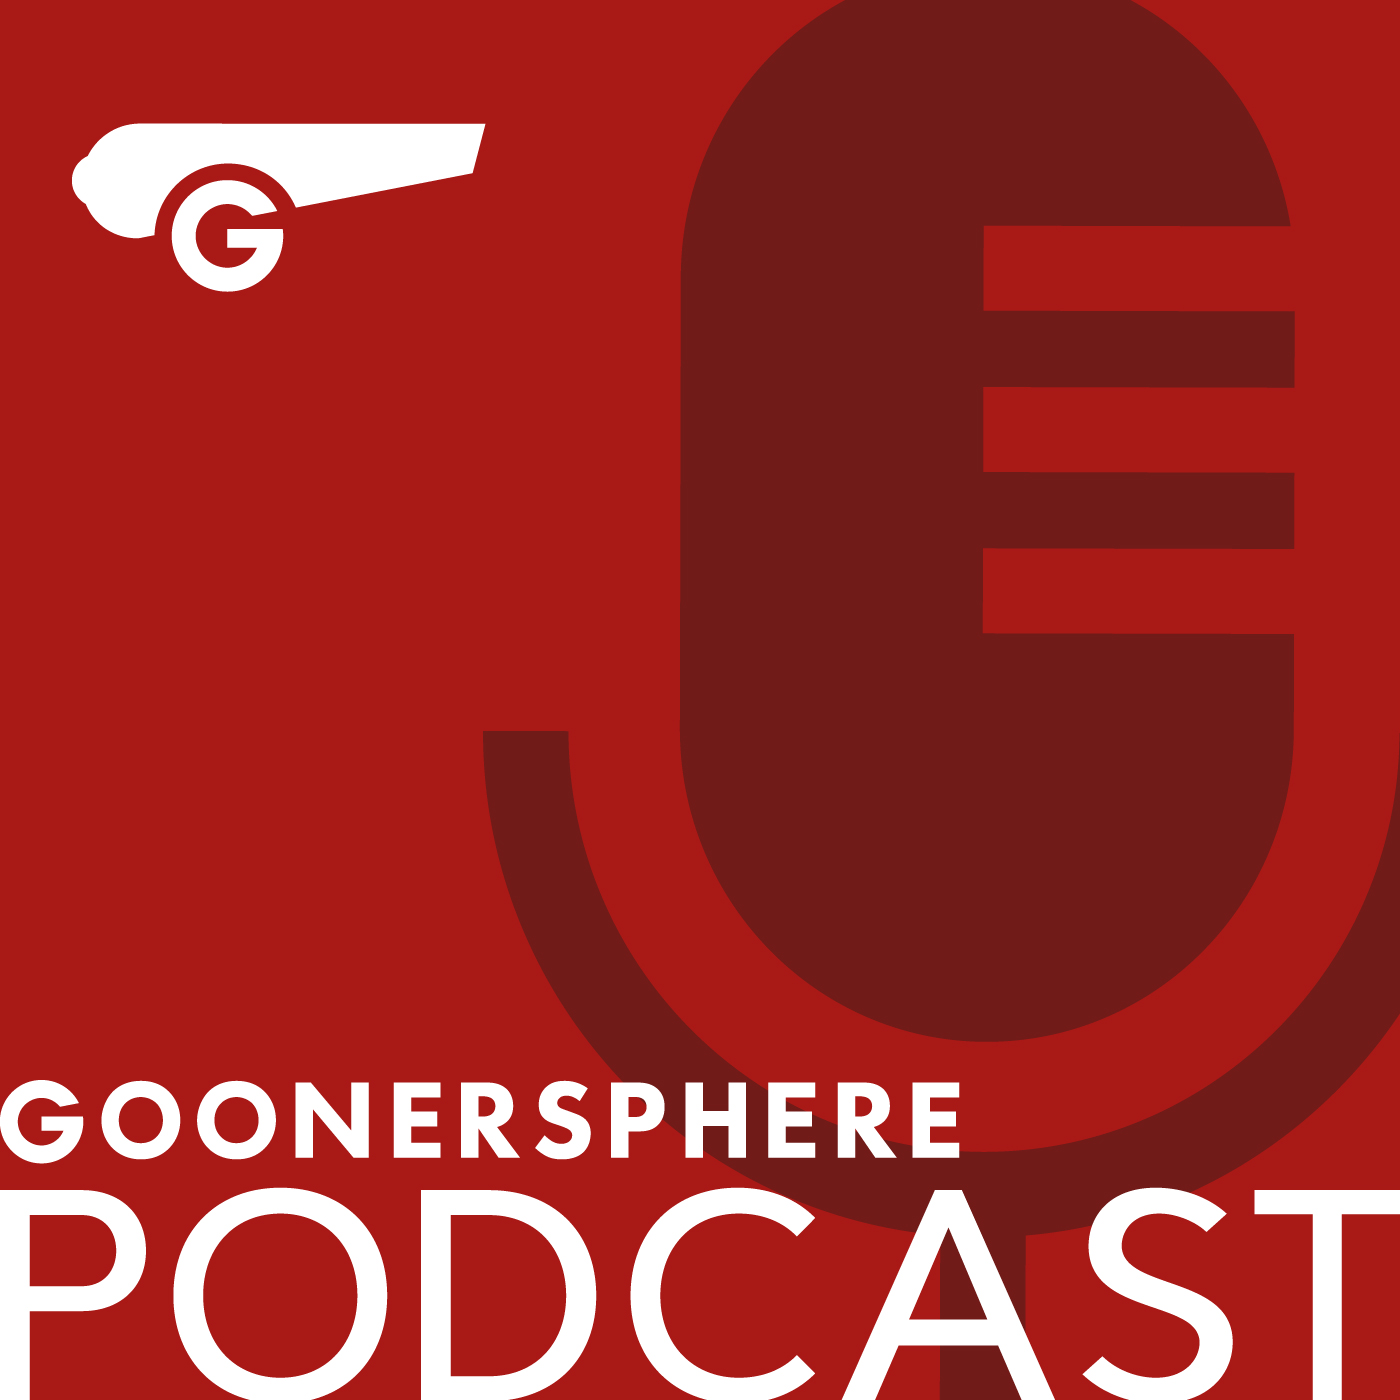 goonersphere podcast logo